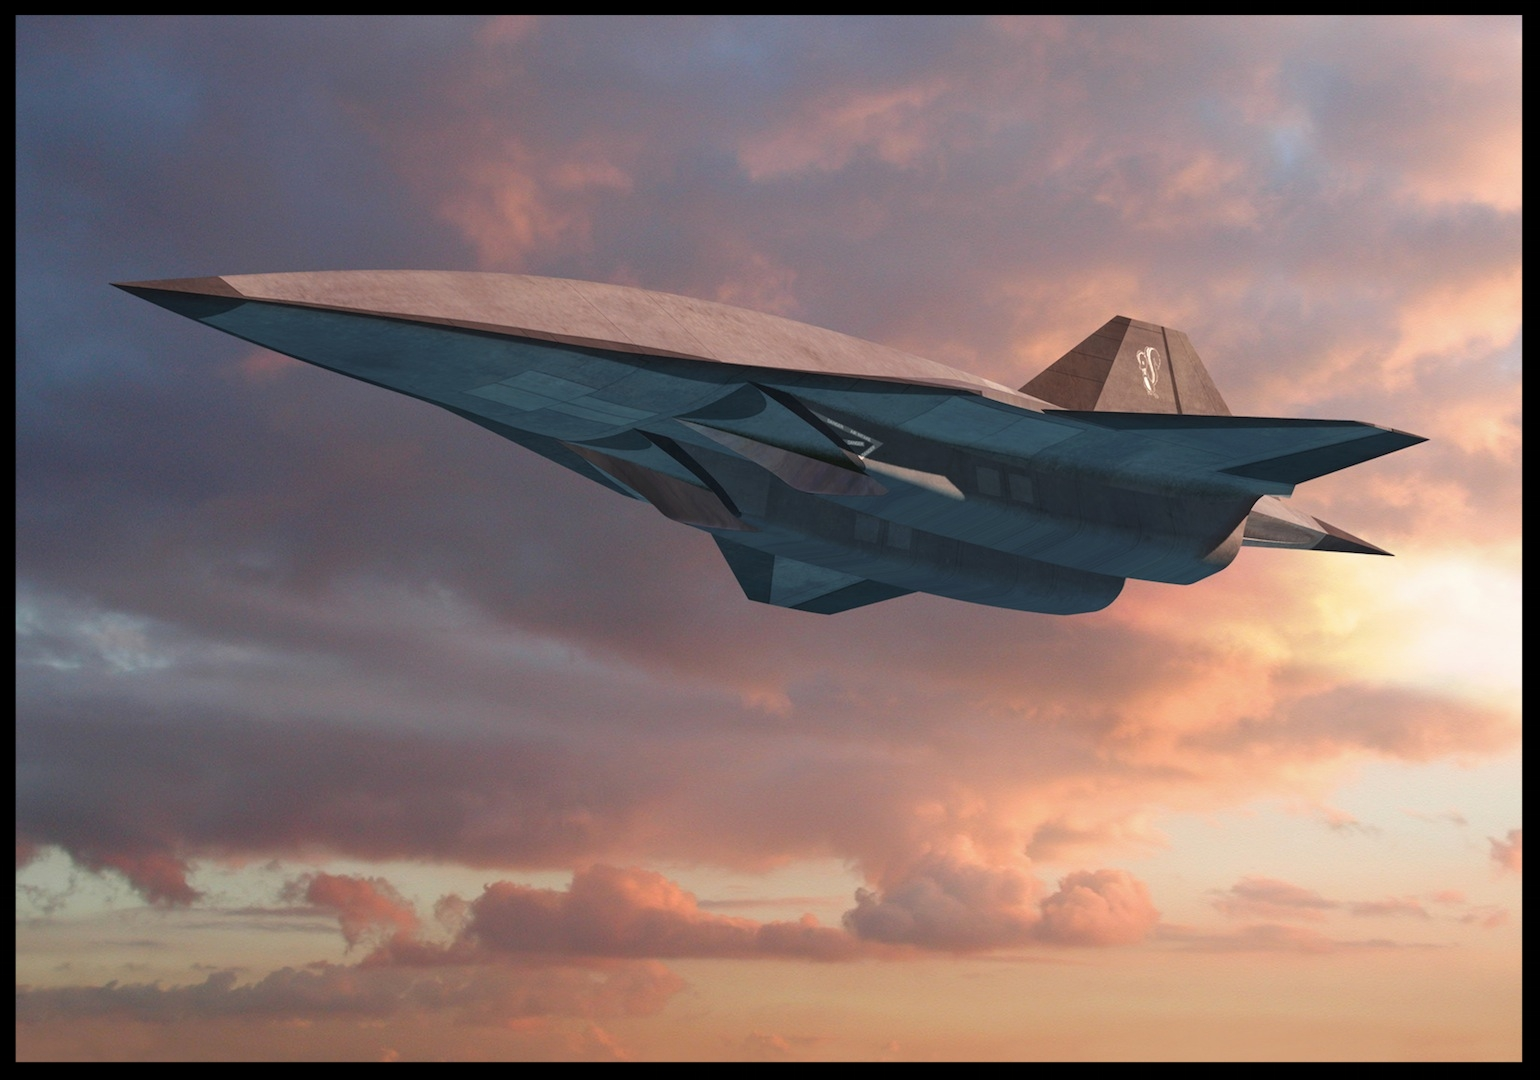 SR-72 by Lockheed. Image- The Drive